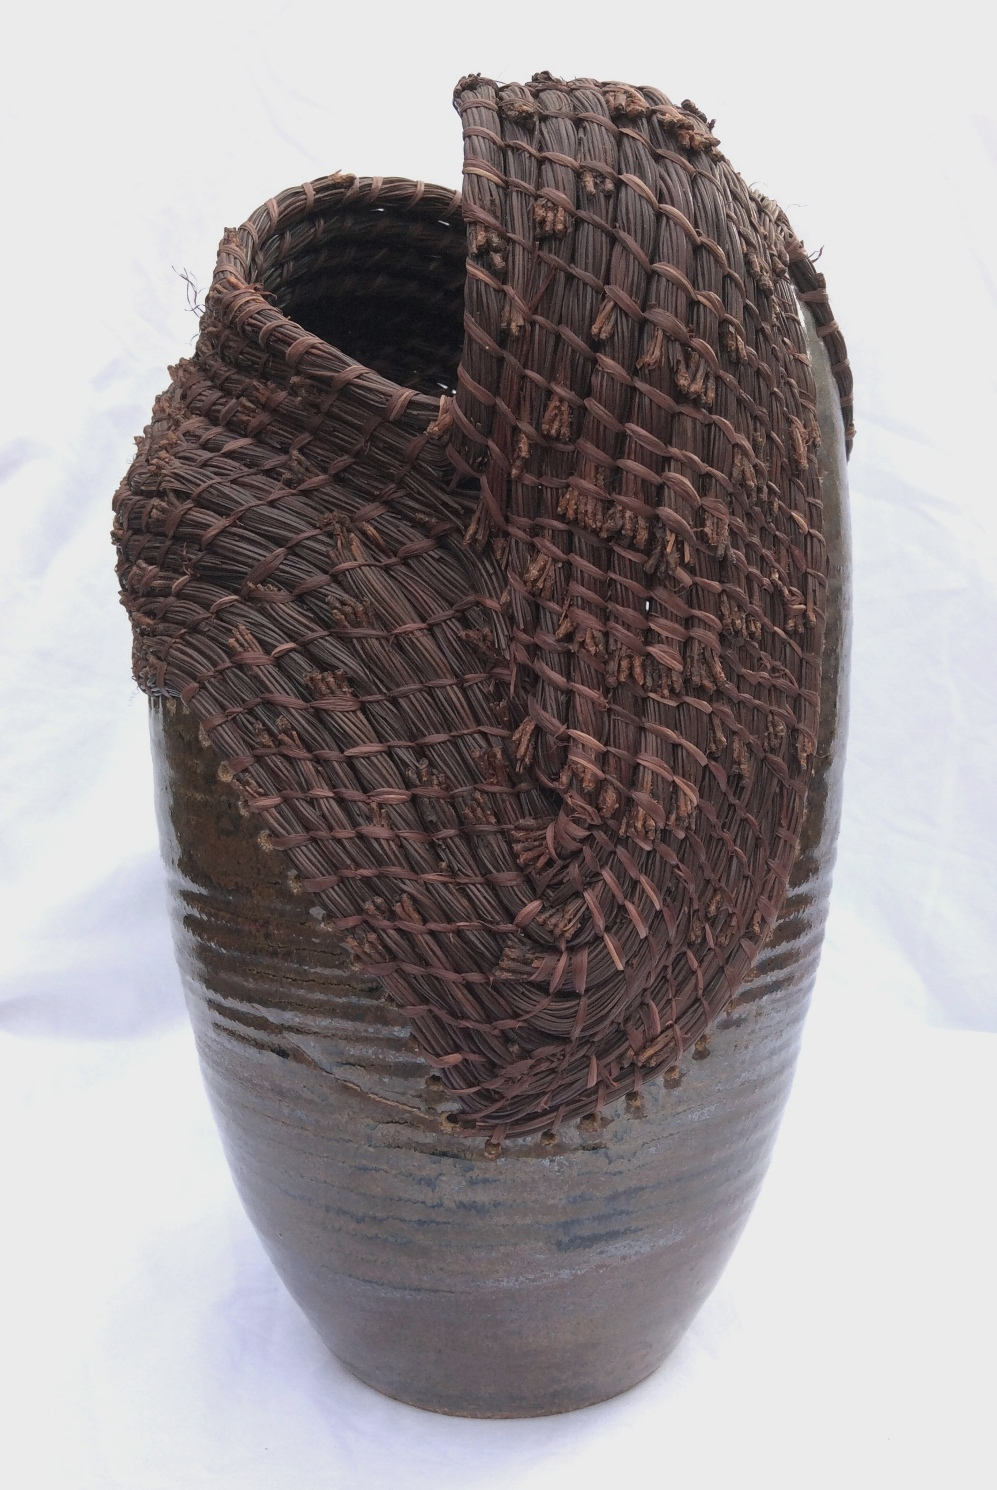 Basket Pot #3